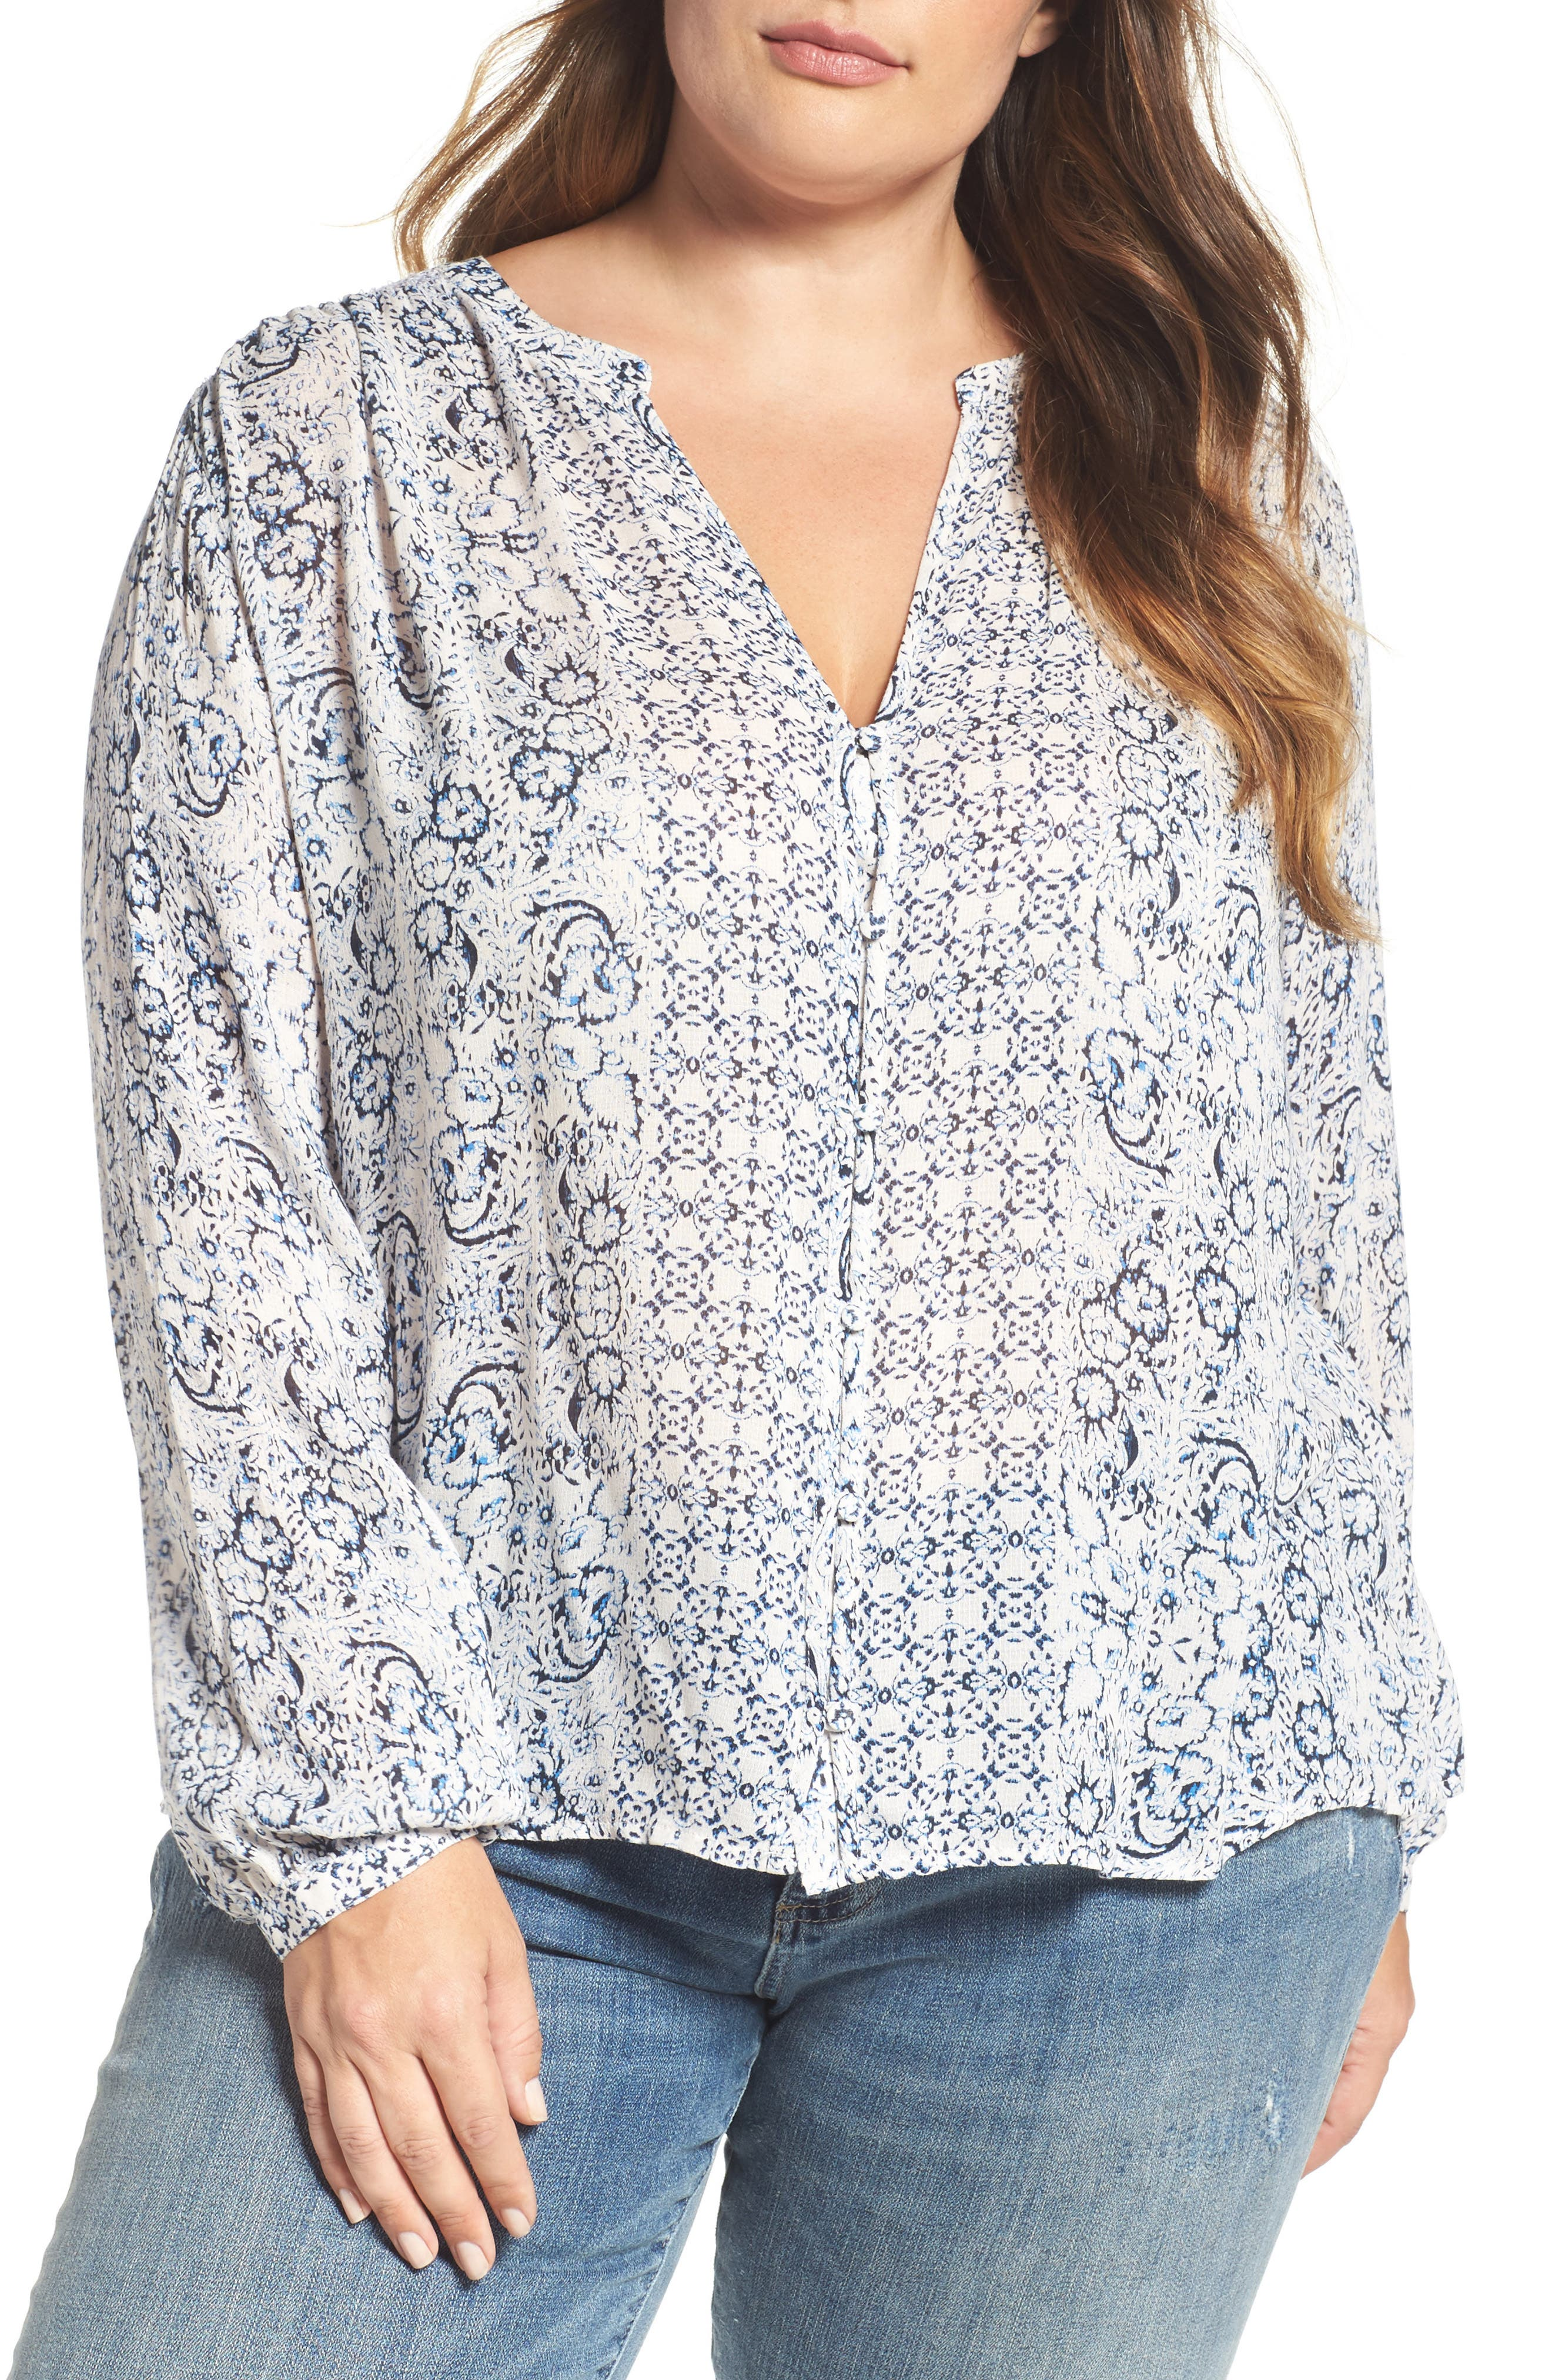 Alternate Image 1 Selected - Lucky Brand Smocked Peasant Top (Plus Size)